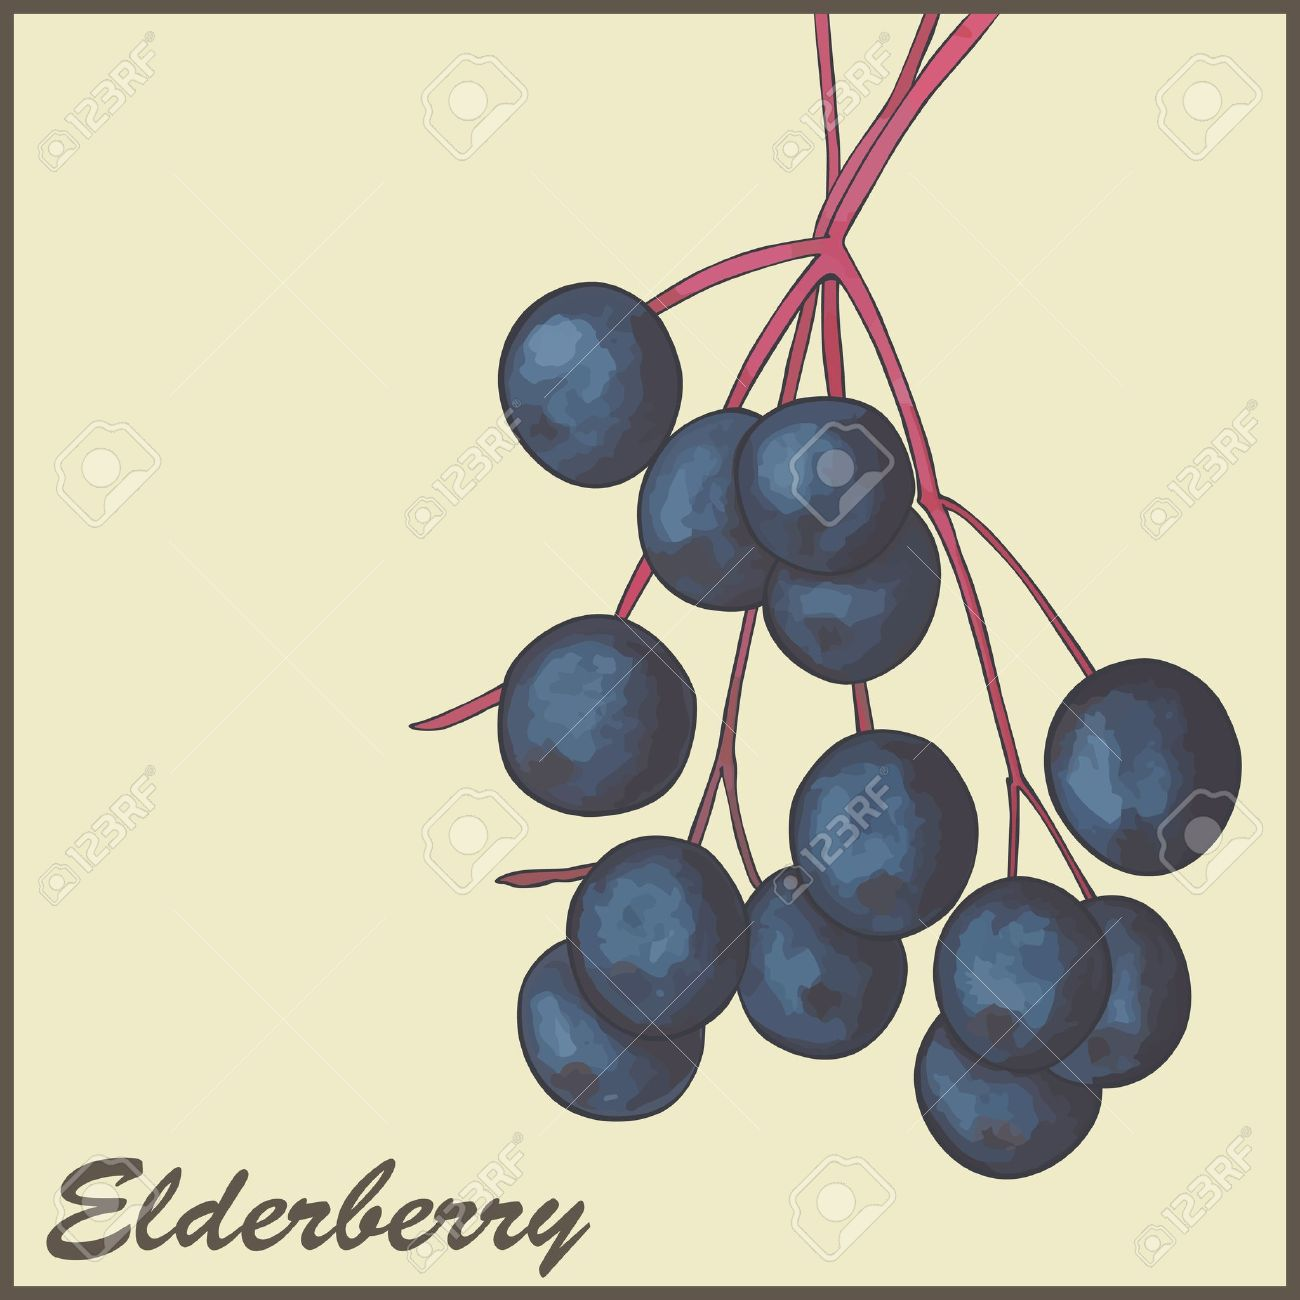 Elderberry fruit clipart.